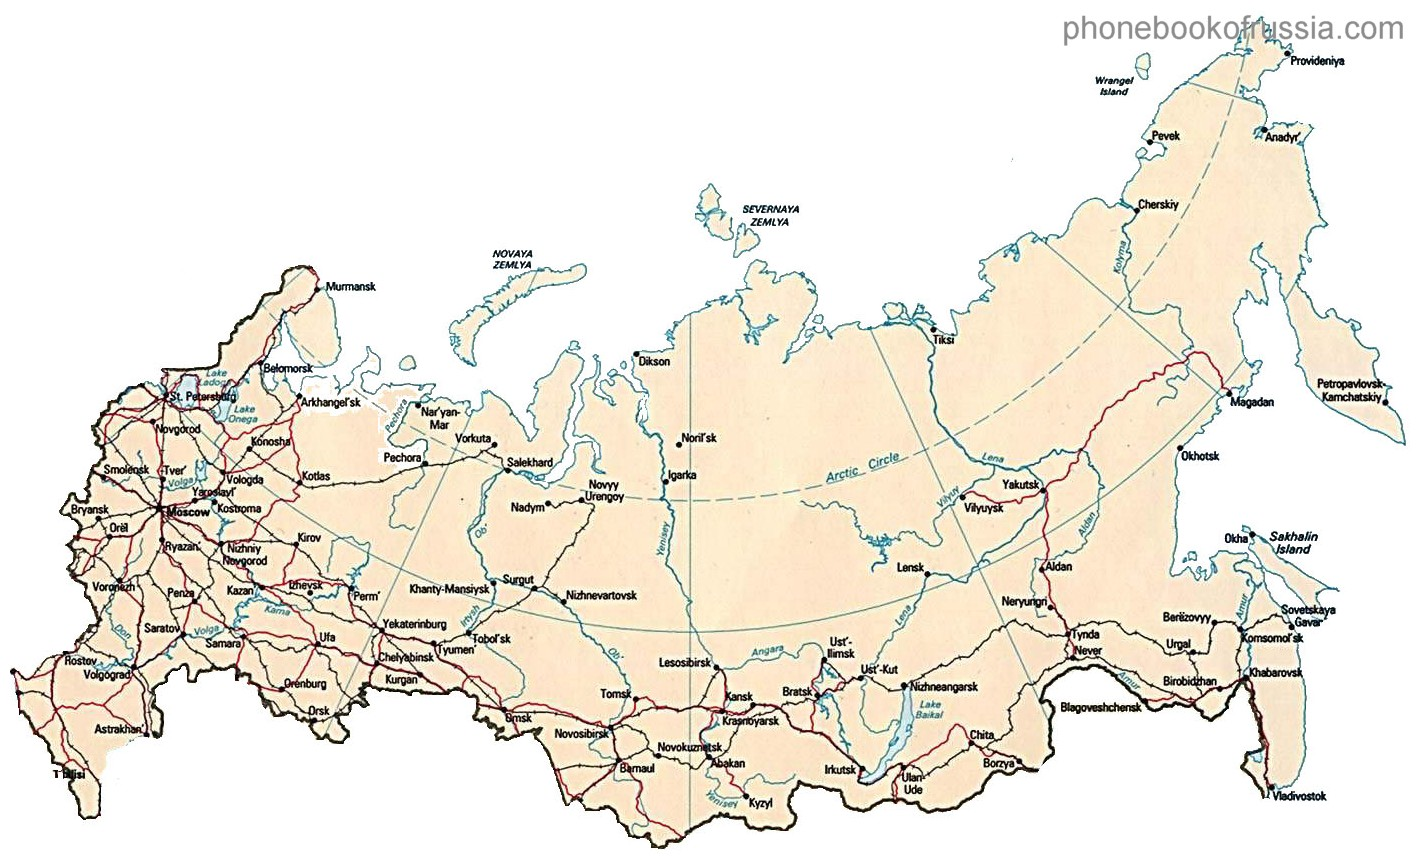 Map of Russia by Phonebook of Russiacom